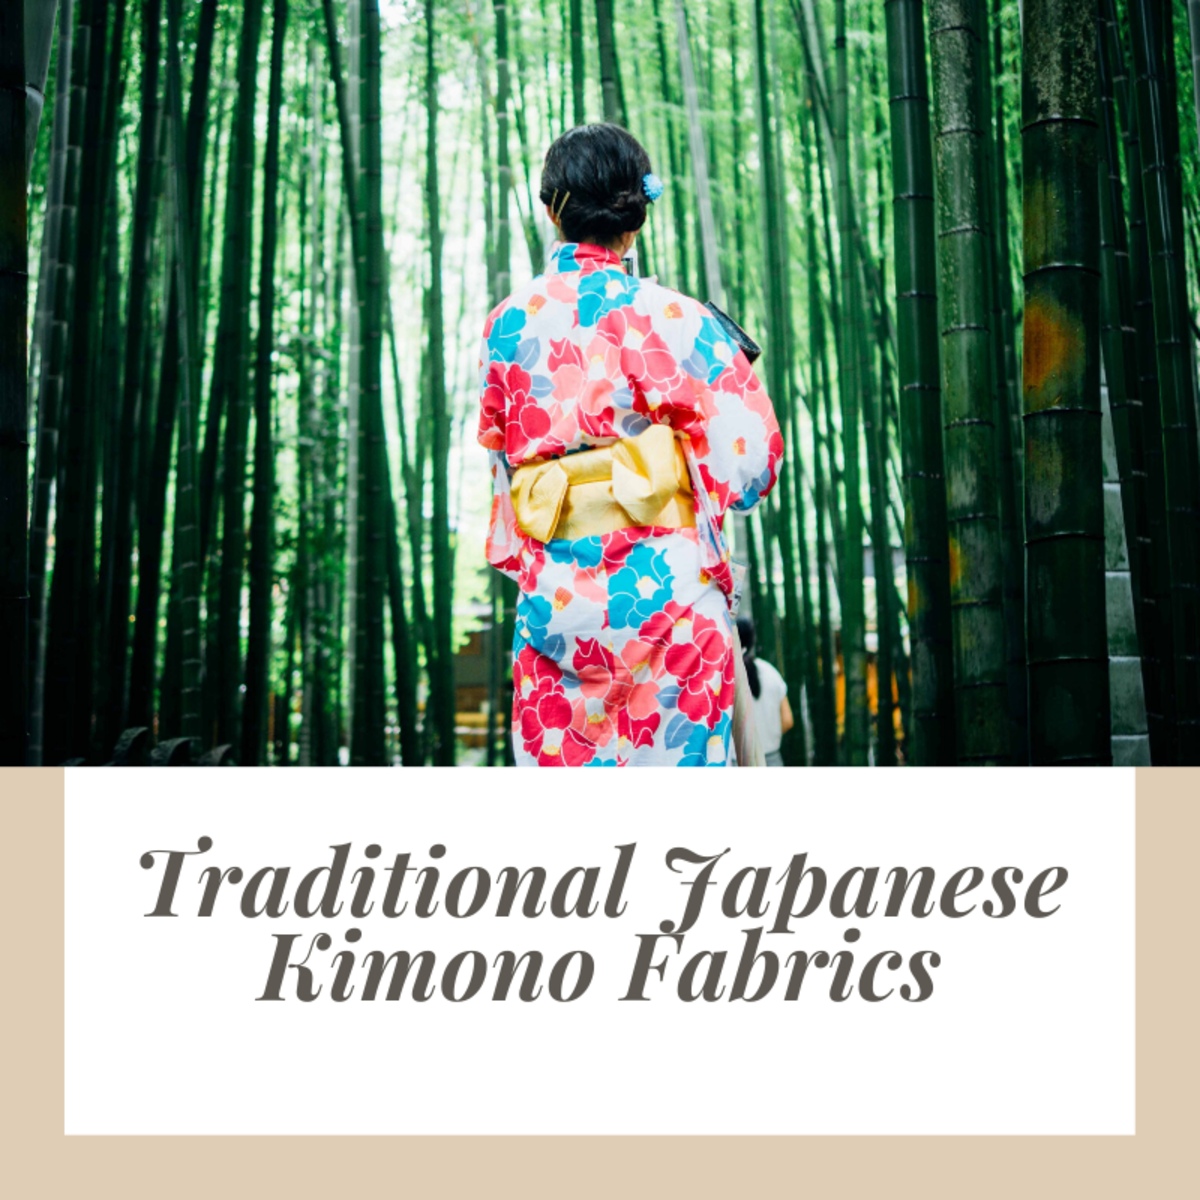 These traditional fabrics make some of the absolutely most beautiful clothing in the world!